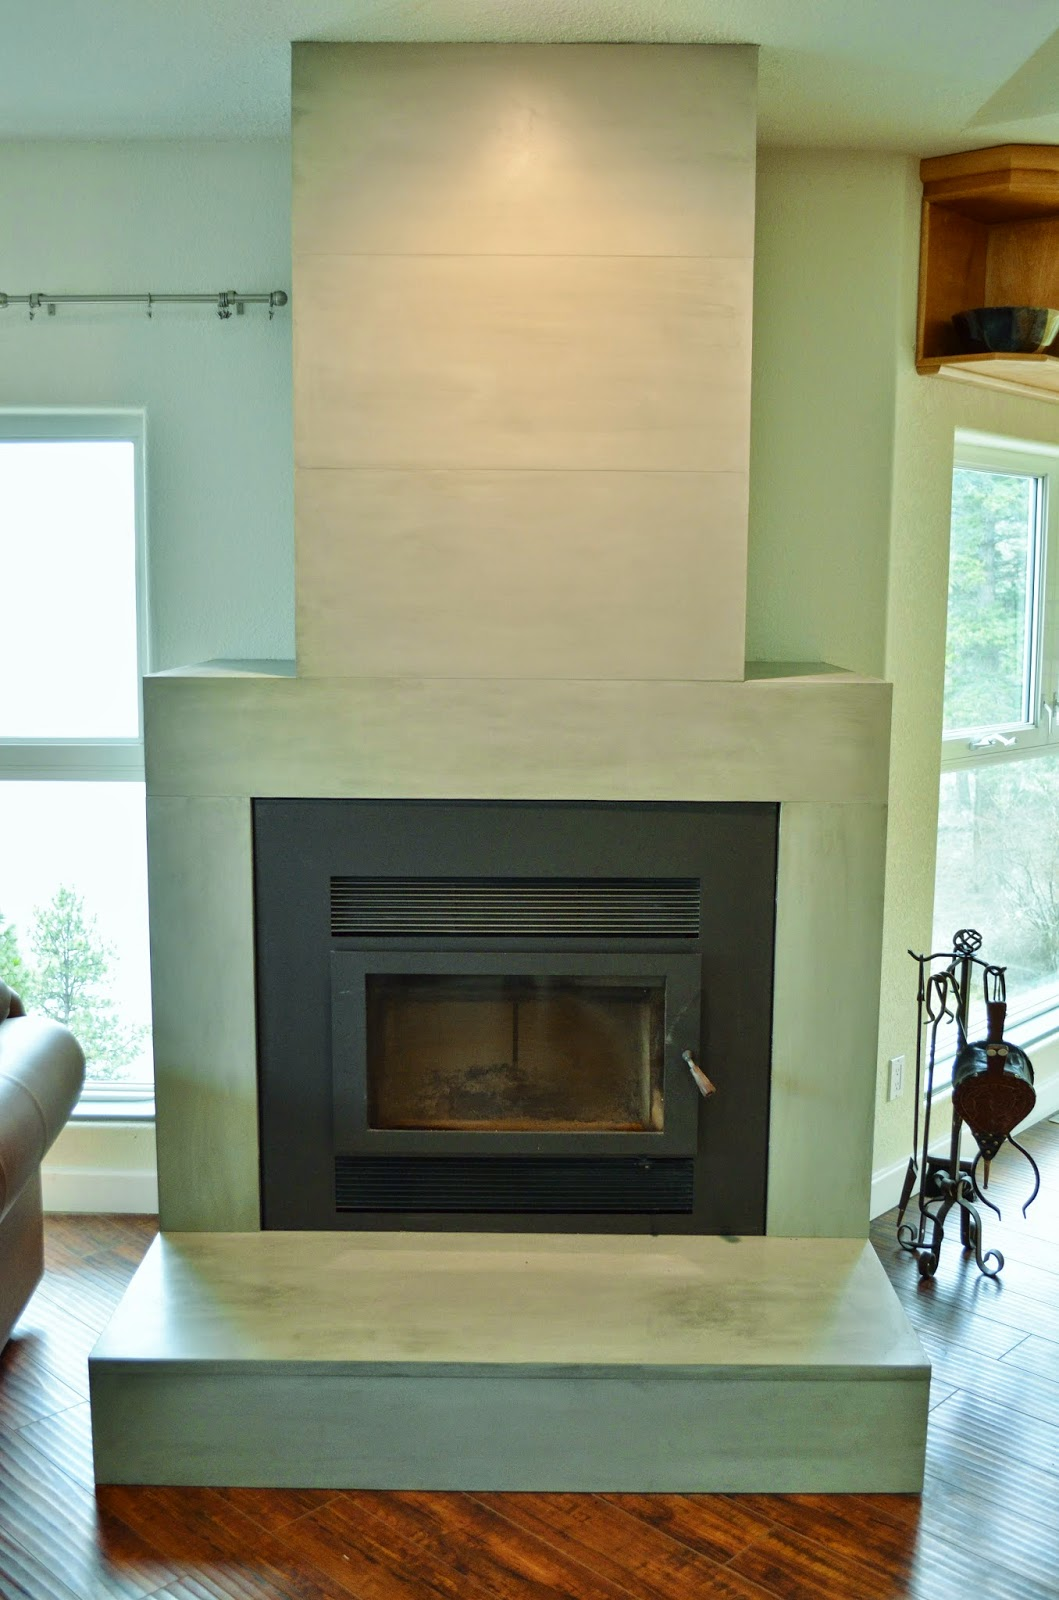 everything need wall about blog for ordering to cotton kristen pena the brick is residential your image tiled full fireplace fireclay tile best you know int product which